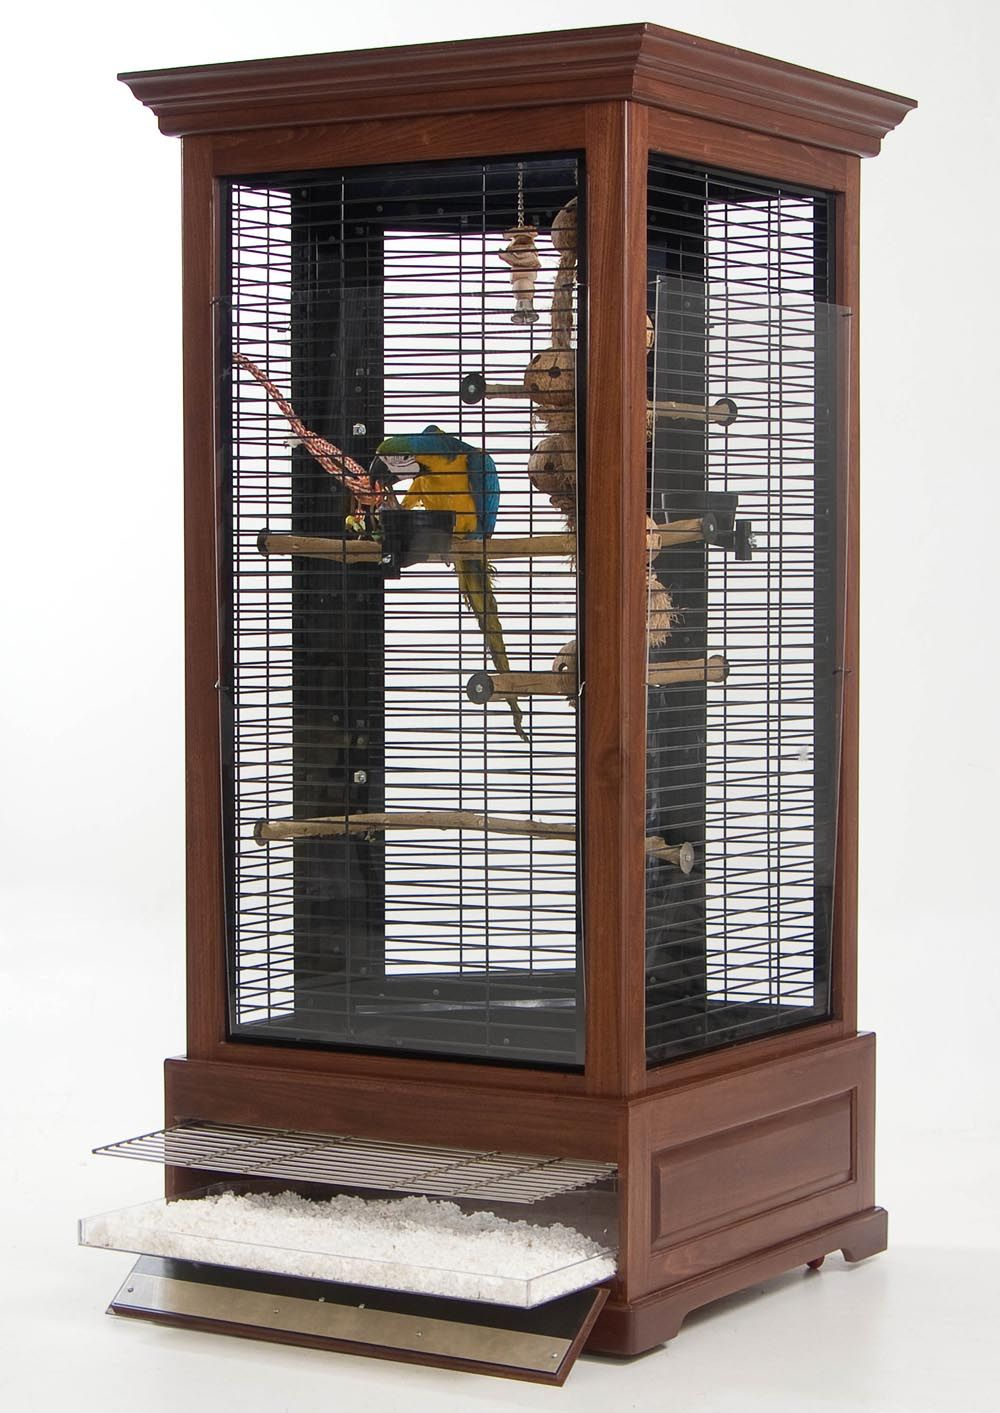 My kinda bird cage for parrots that is anyways. More like ...